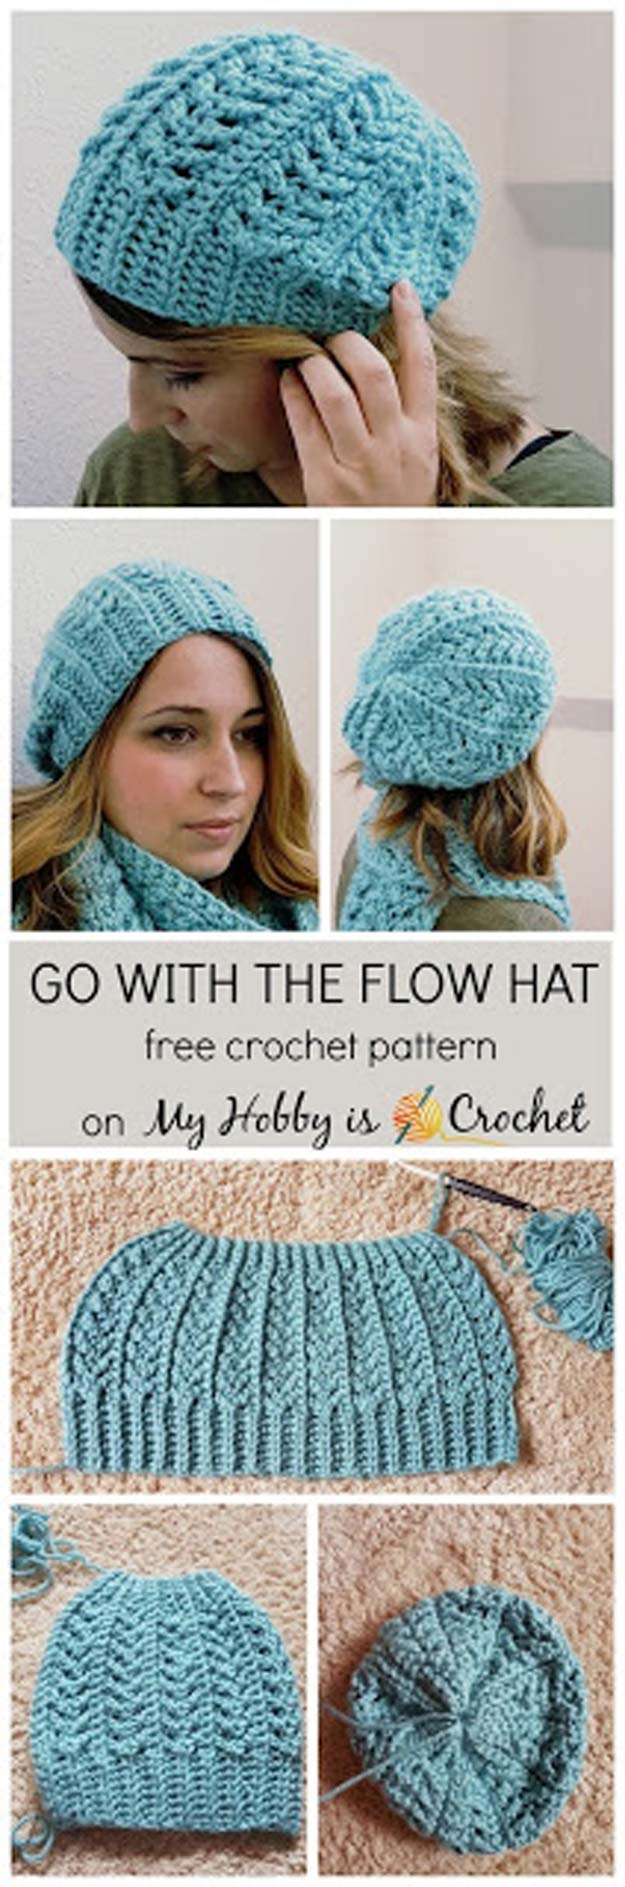 Crochet Patterns and Projects for Teens - Go with the Flow Hat - Best Free Patterns and Tutorials for Crocheting Cute DIY Gifts, Room Decor and Accessories - How To for Beginners - Learn How To Make a Headband, Scarf, Hat, Animals and Clothes DIY Projects and Crafts for Teenagers #crochet #crafts #teencrafts #freecrochet #crochetpatterns